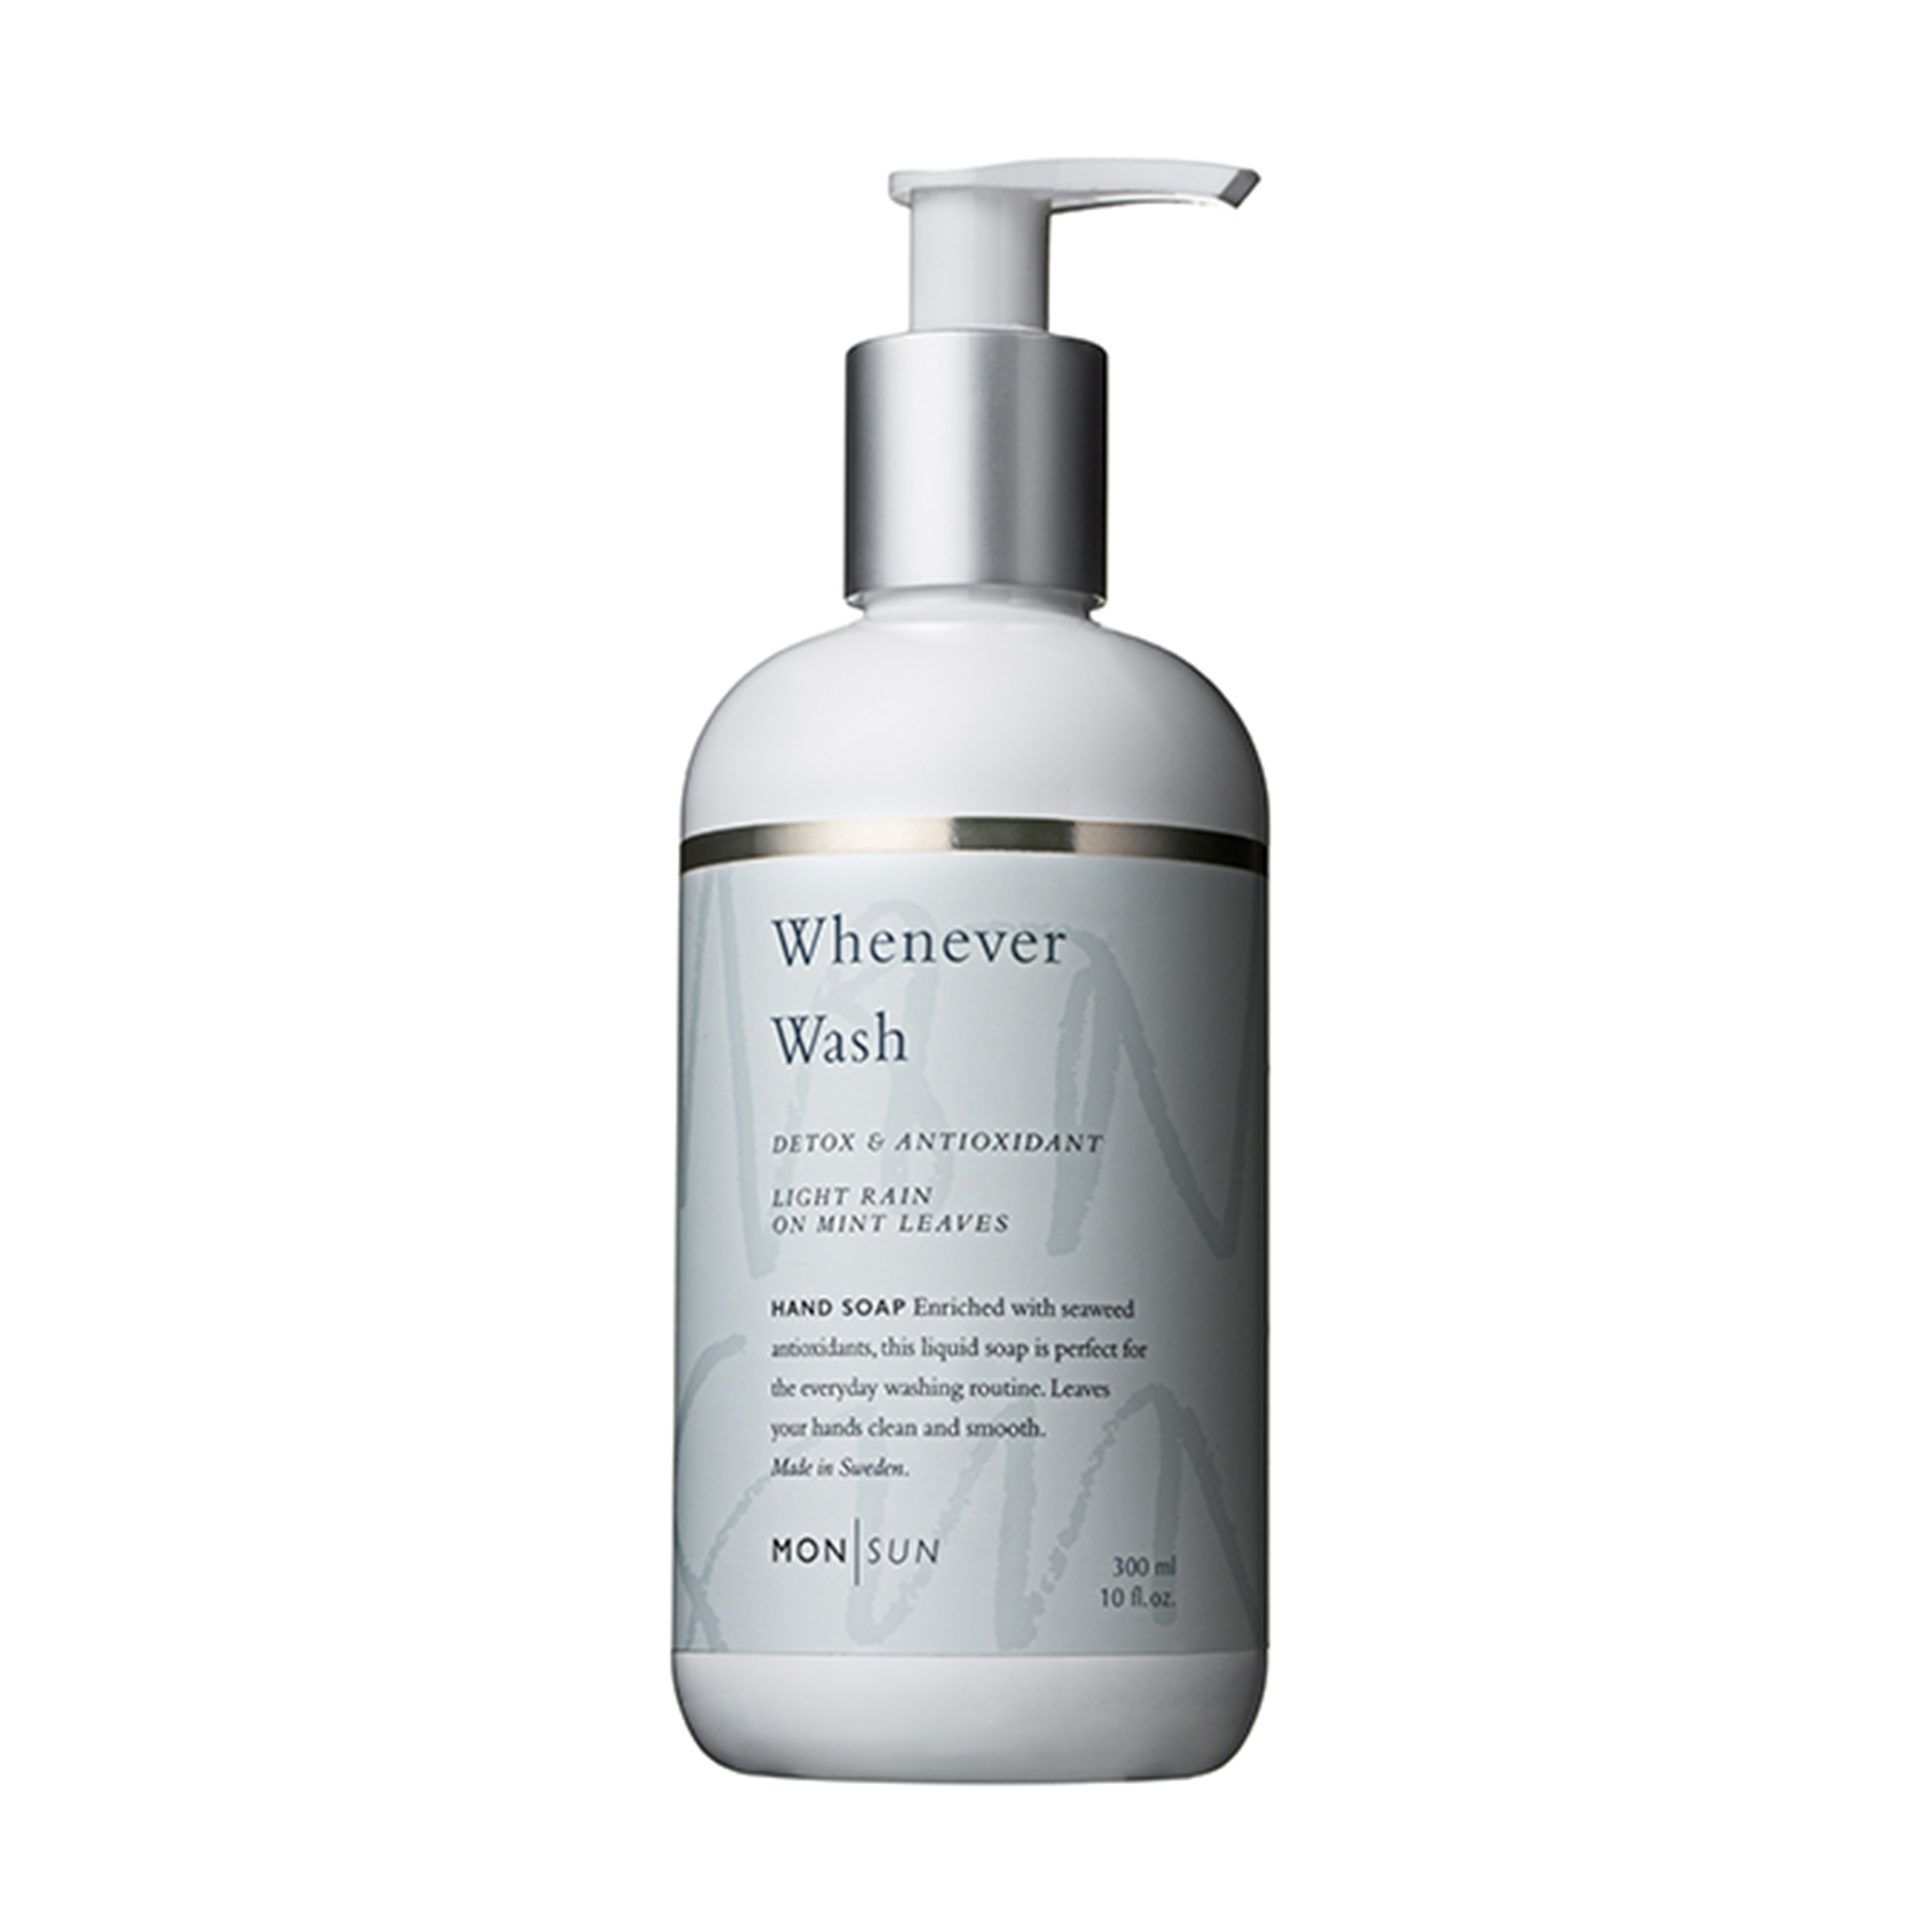 Whenever Wash Detox & Antioxidant Hand Soap